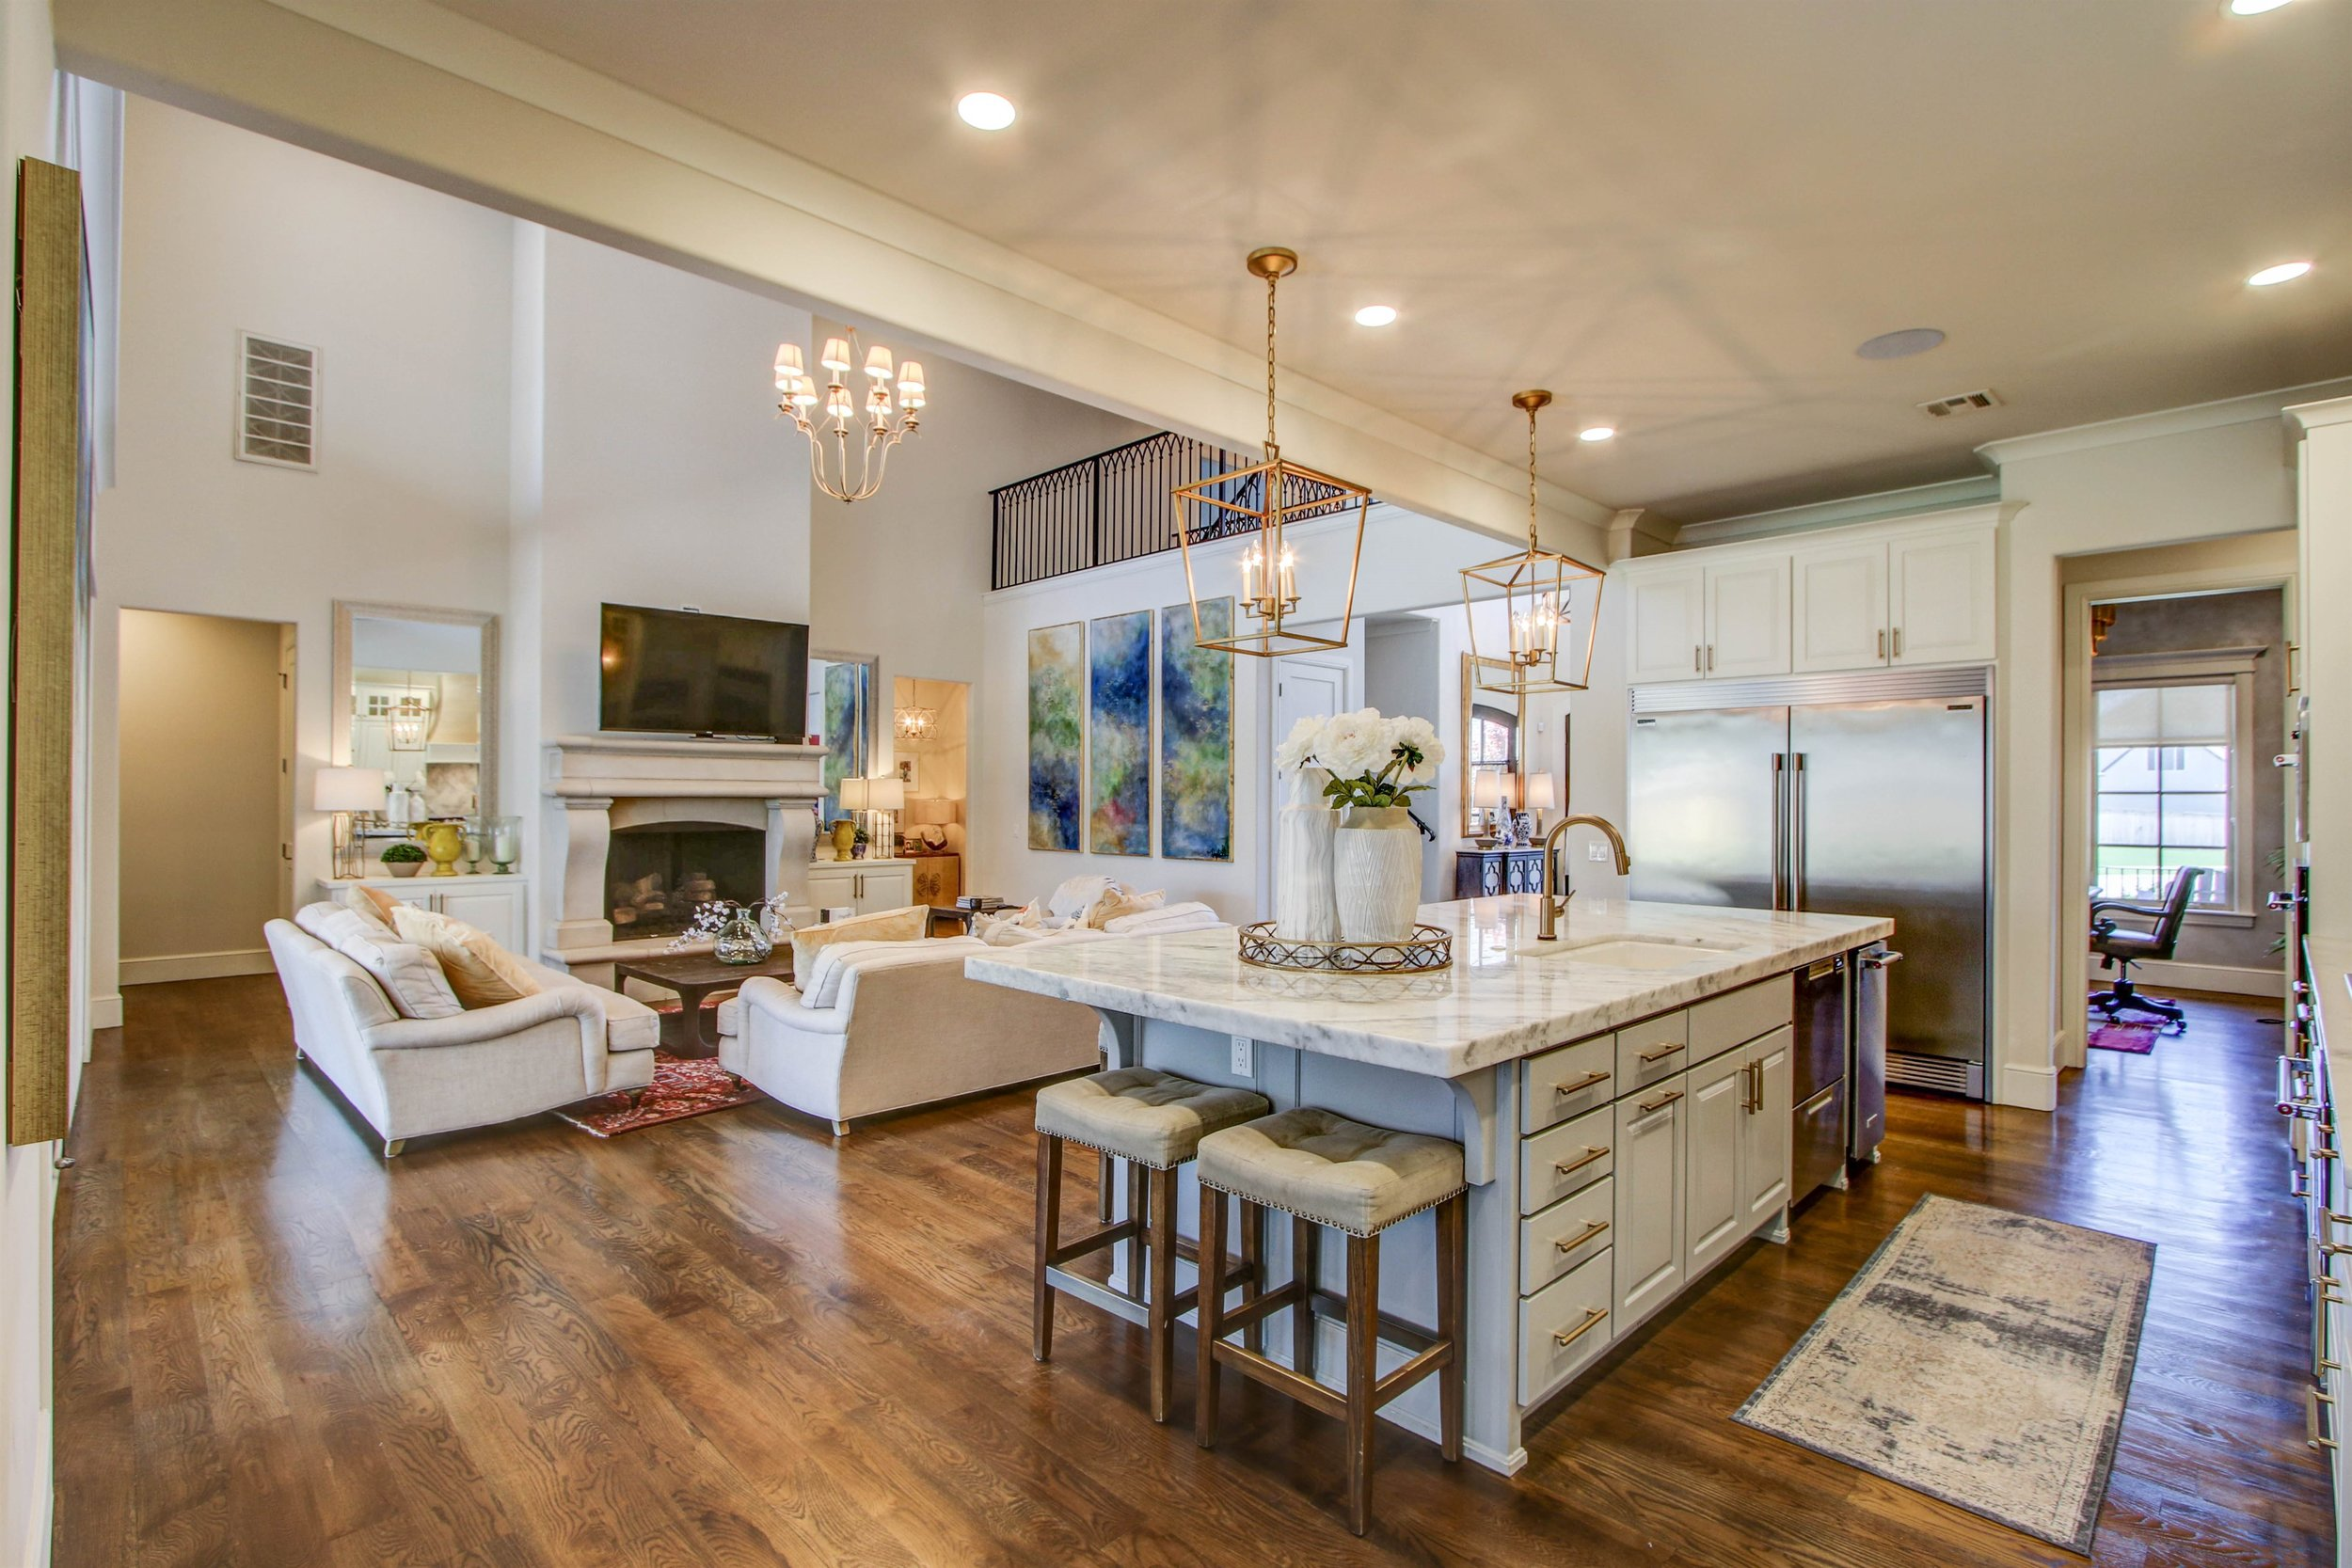 009_Kitchen and Living Room.jpg